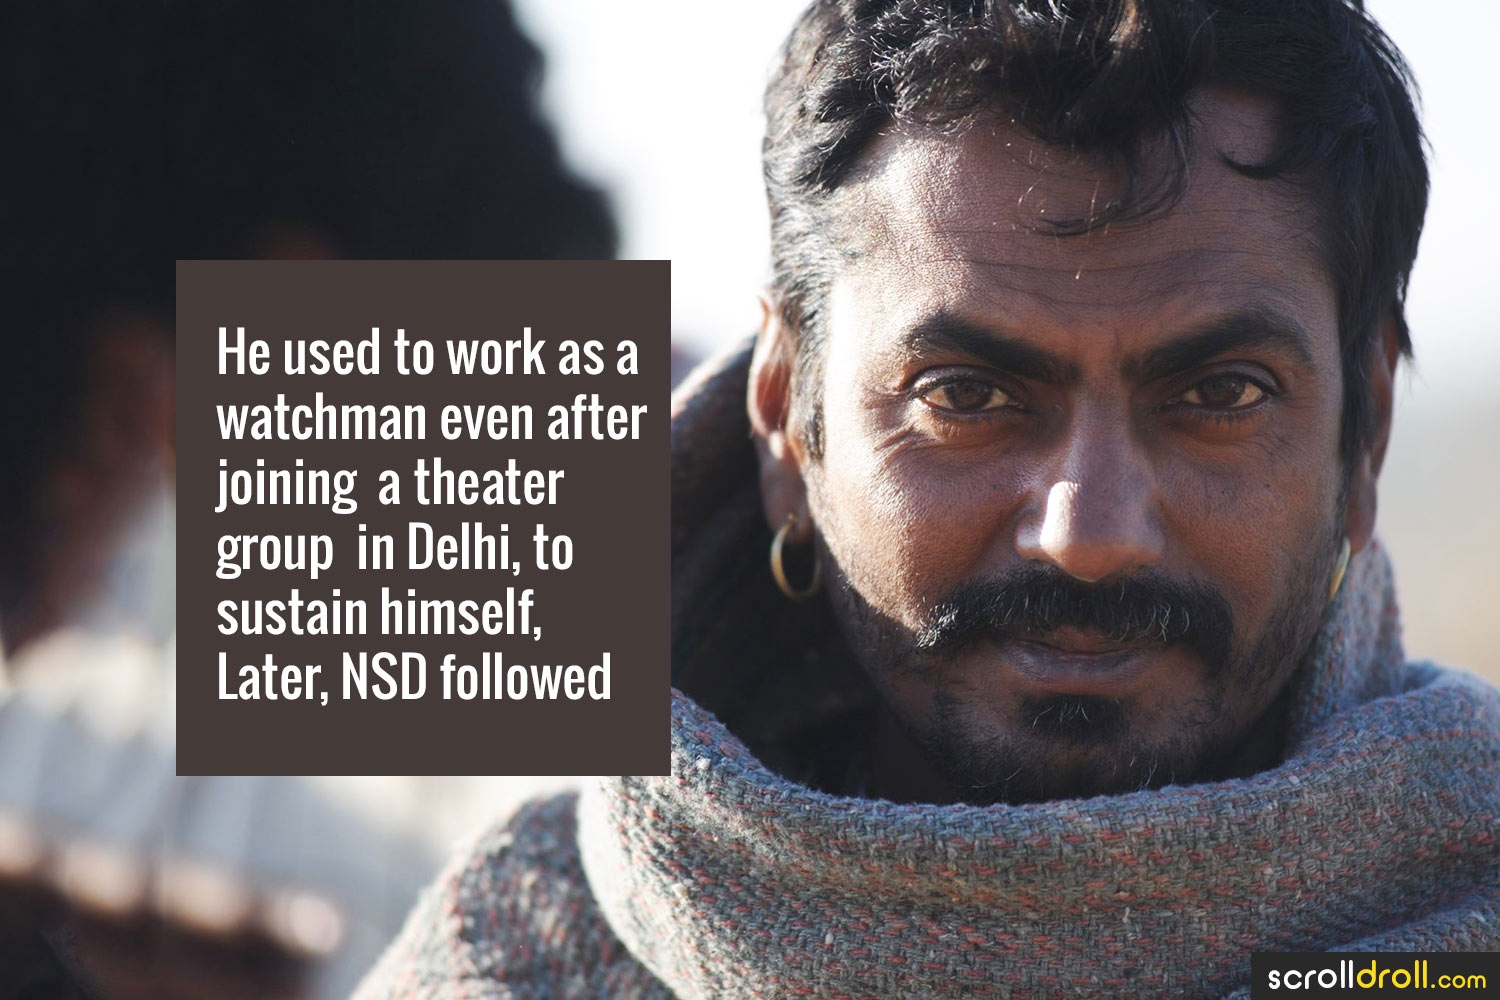 Facts about Nawazuddin Siddique-He used to worka as a watchman even after joining a theatre group in Delhi,to sustain himself,Later,NSD followed